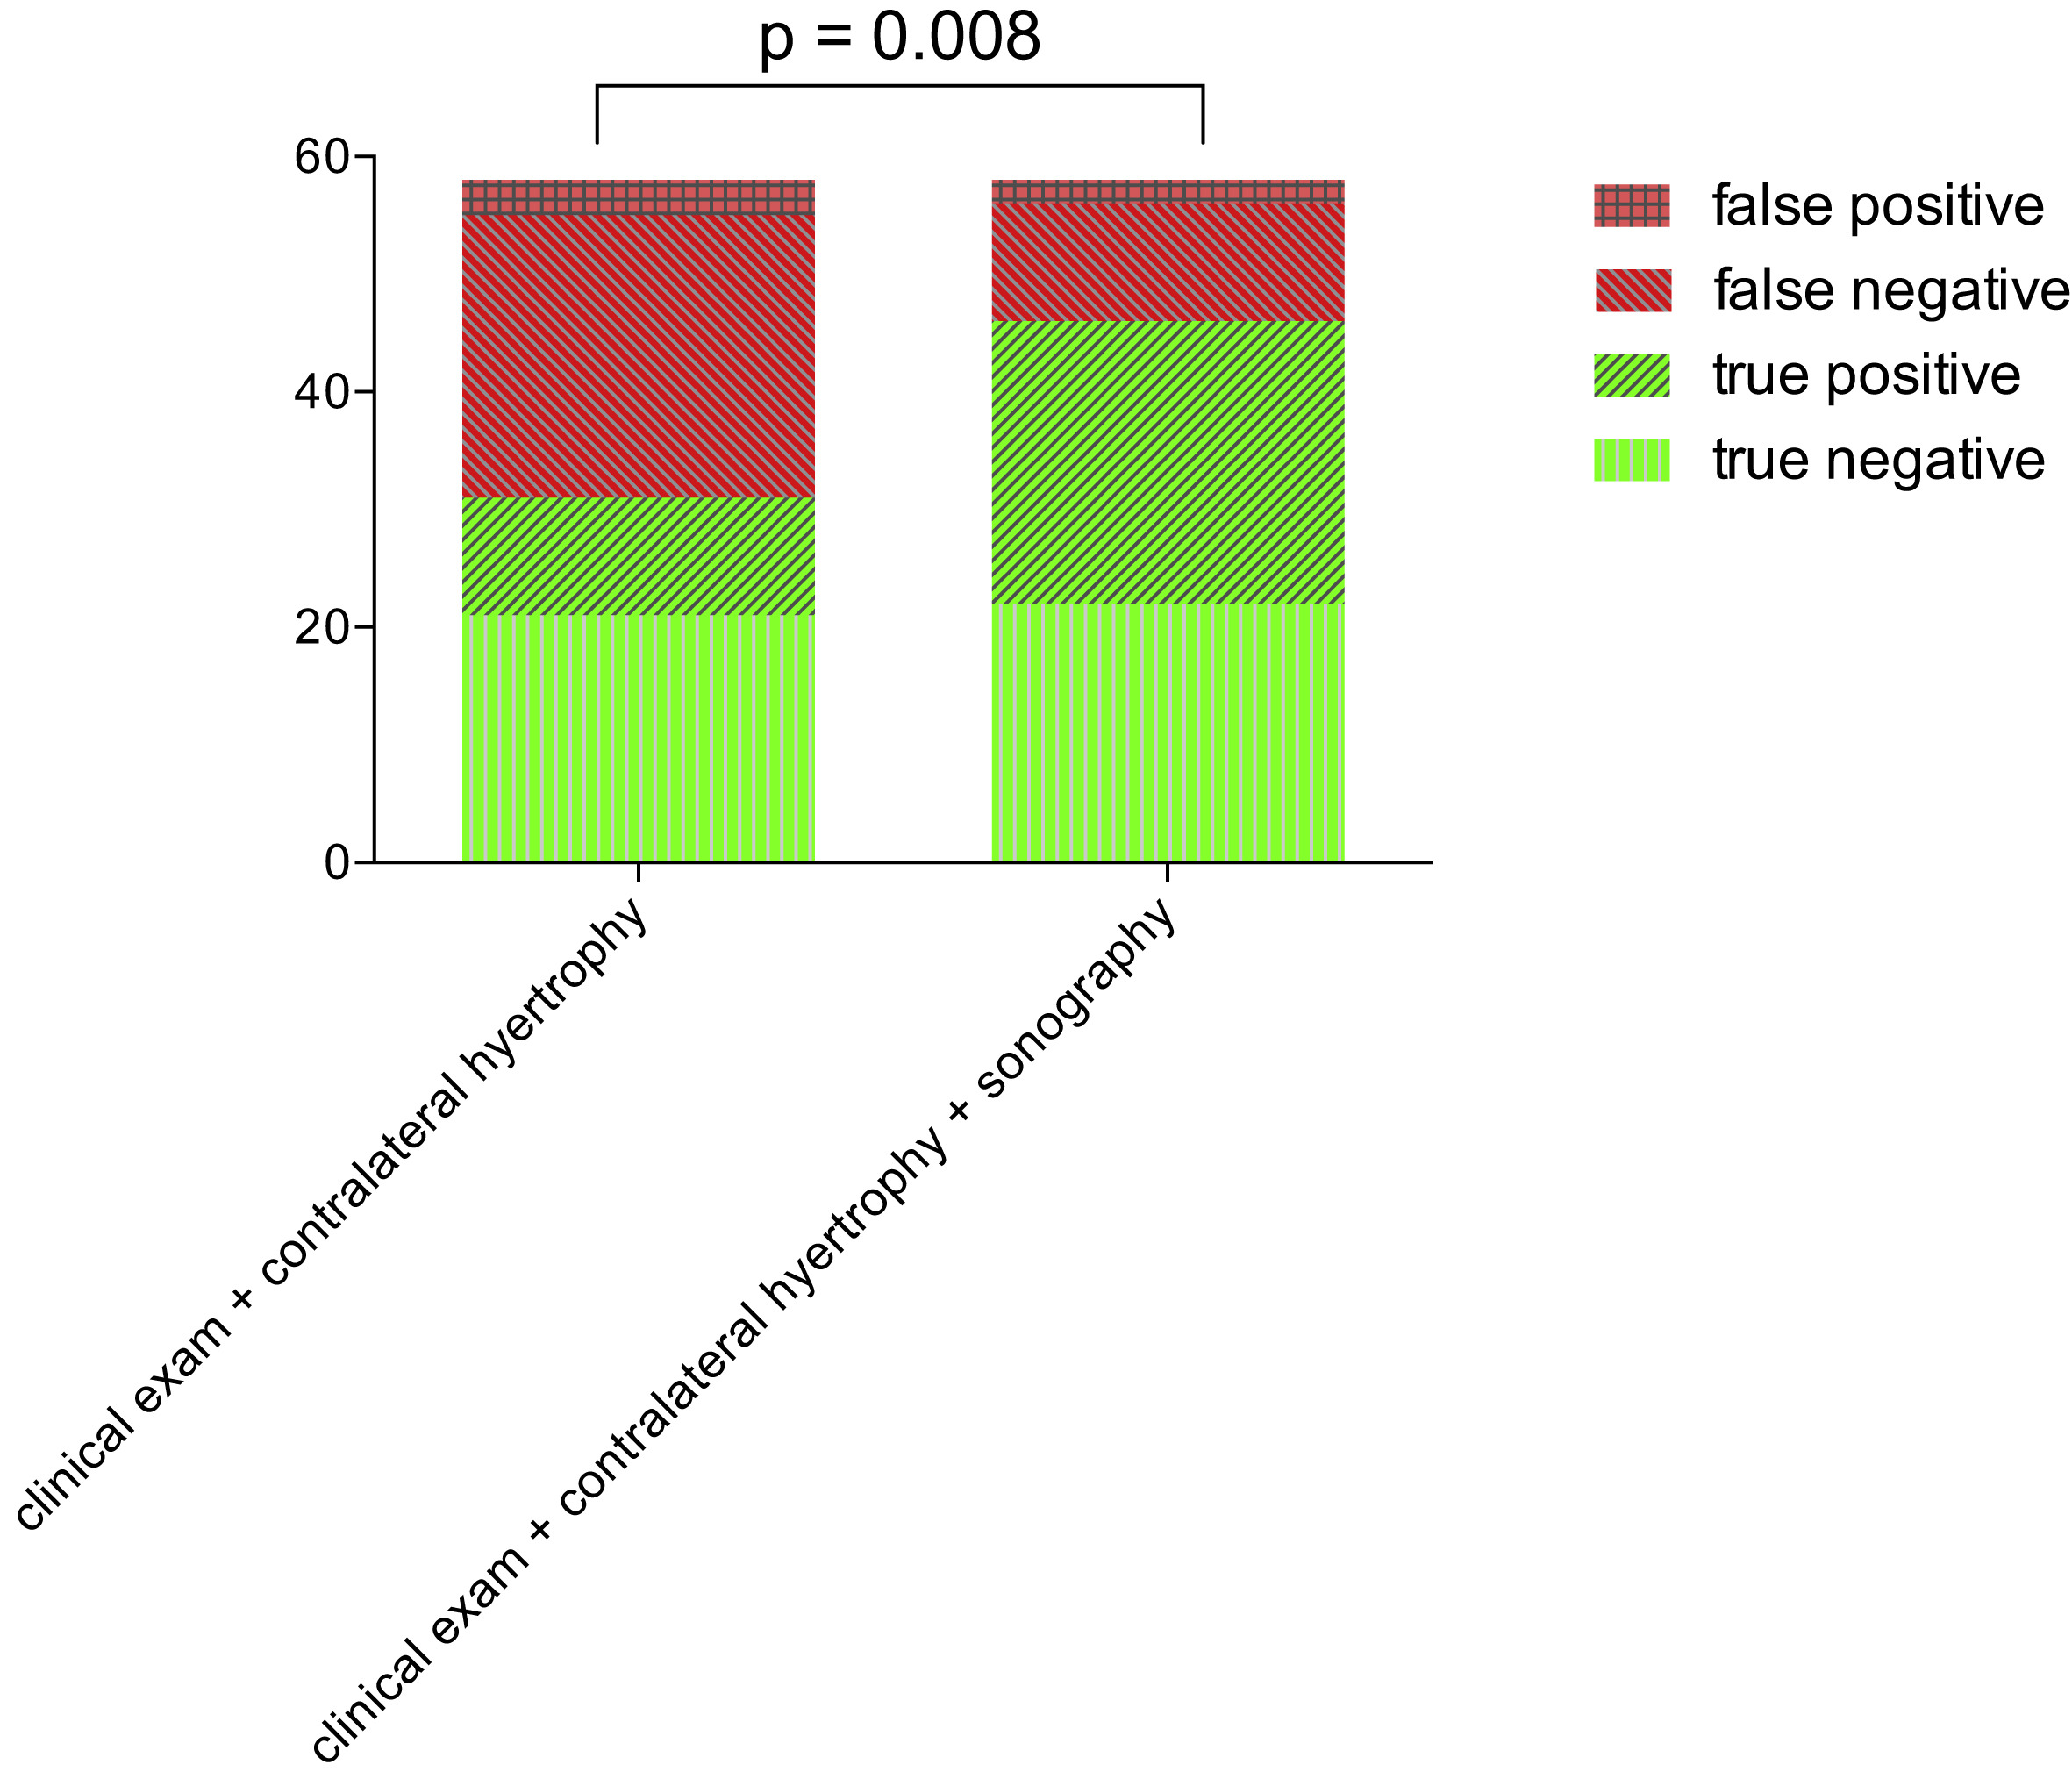 Nonpalpable Testes Ultrasound And Contralateral Testicular Hypertrophy Predict The Surgical